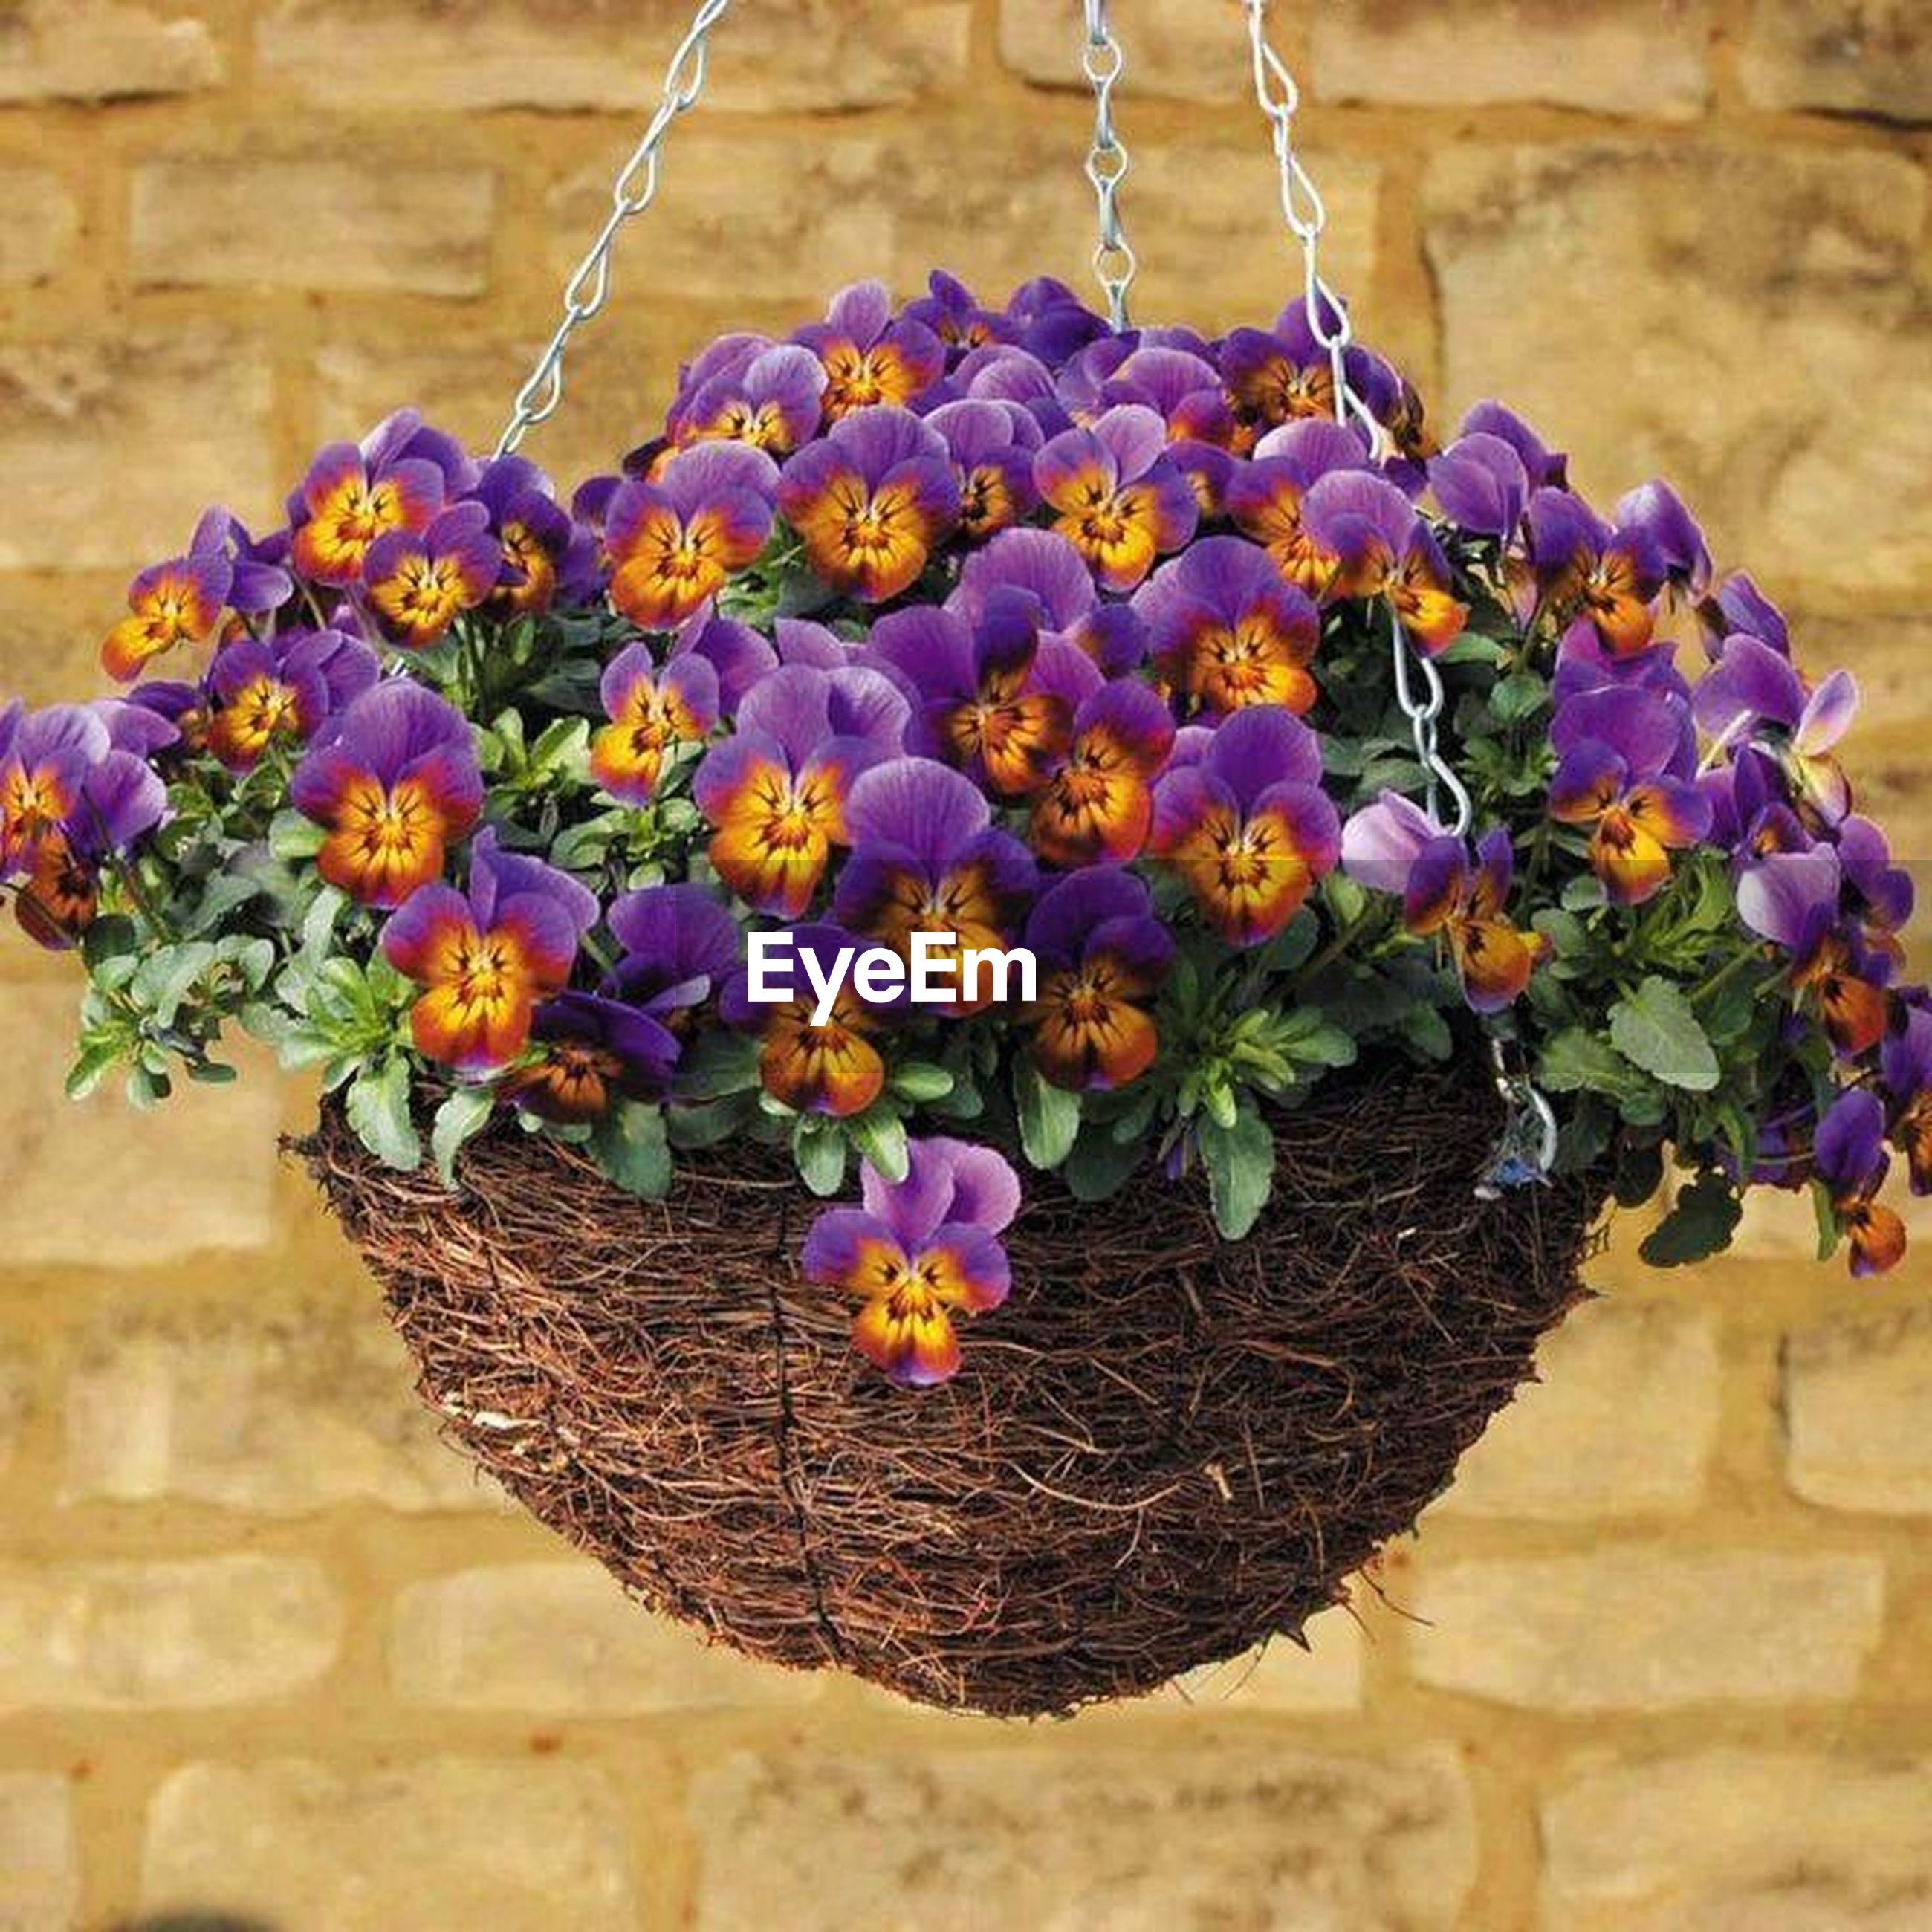 flower, freshness, fragility, plant, petal, growth, purple, multi colored, beauty in nature, wall - building feature, decoration, nature, blooming, stone wall, variation, day, wood - material, outdoors, no people, potted plant